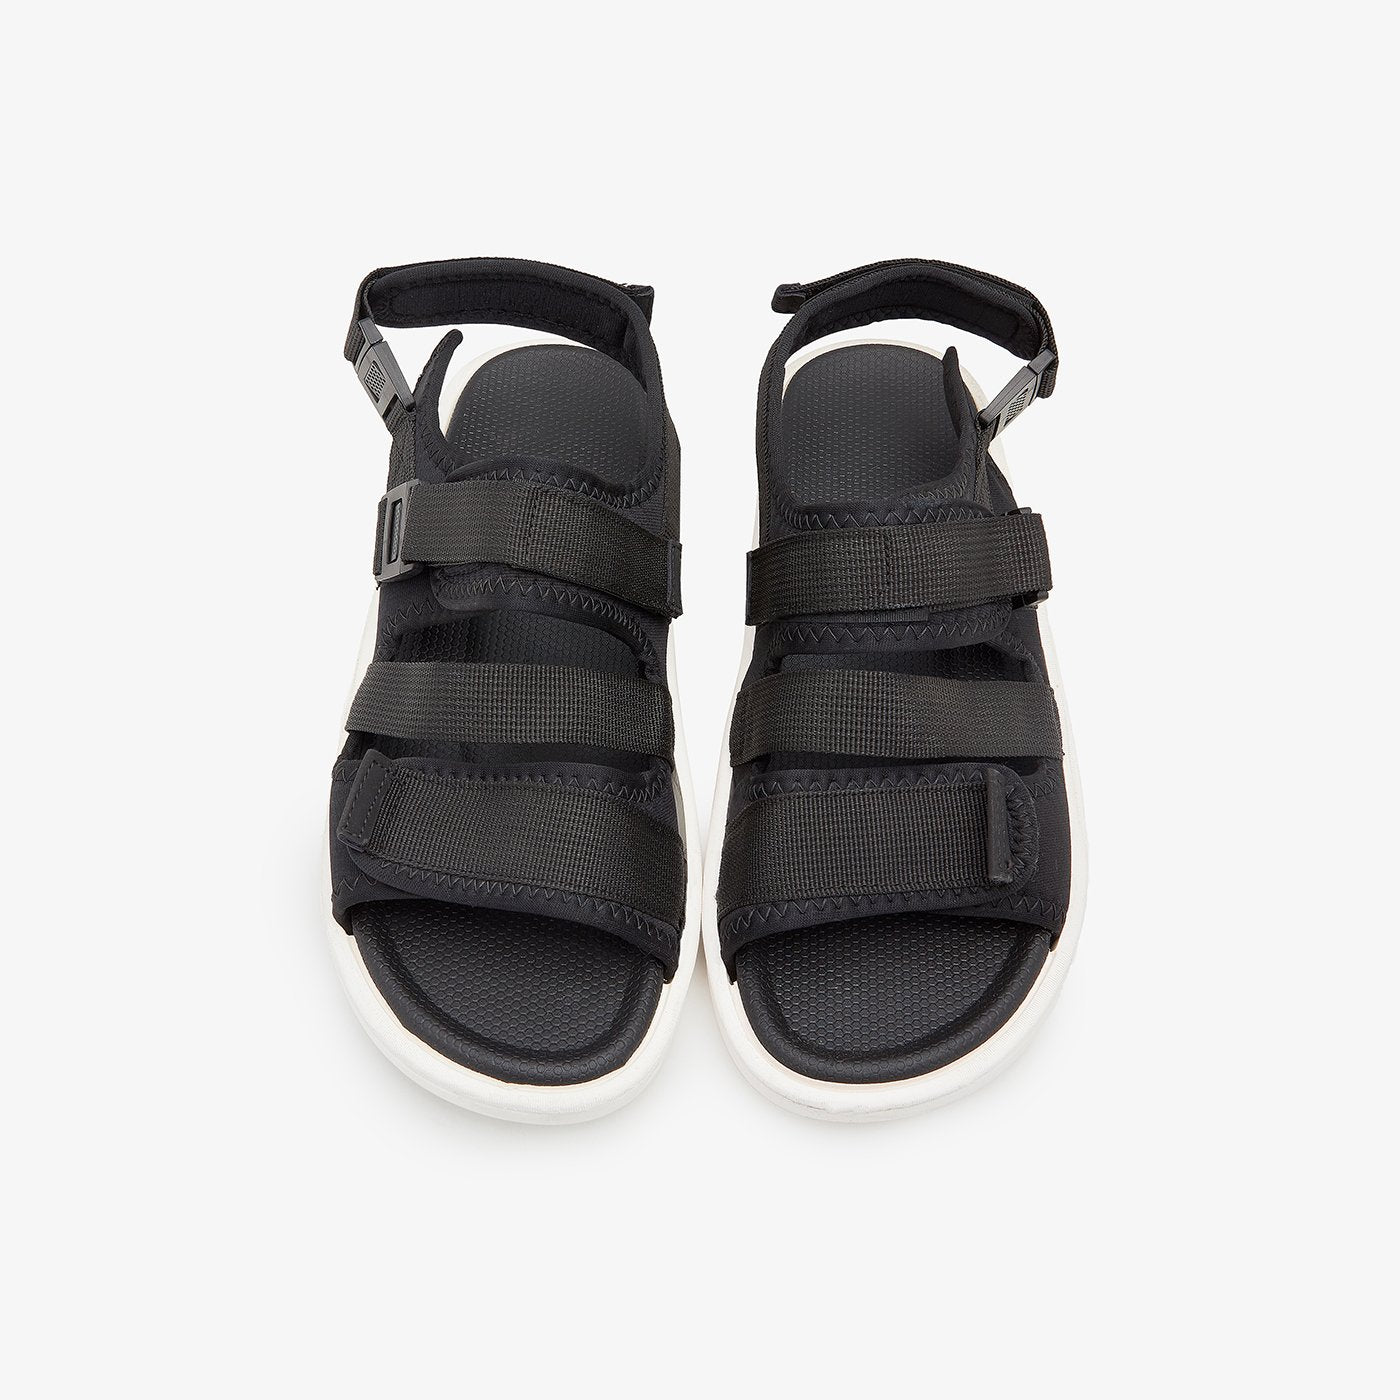 Sporty Sandals for Men